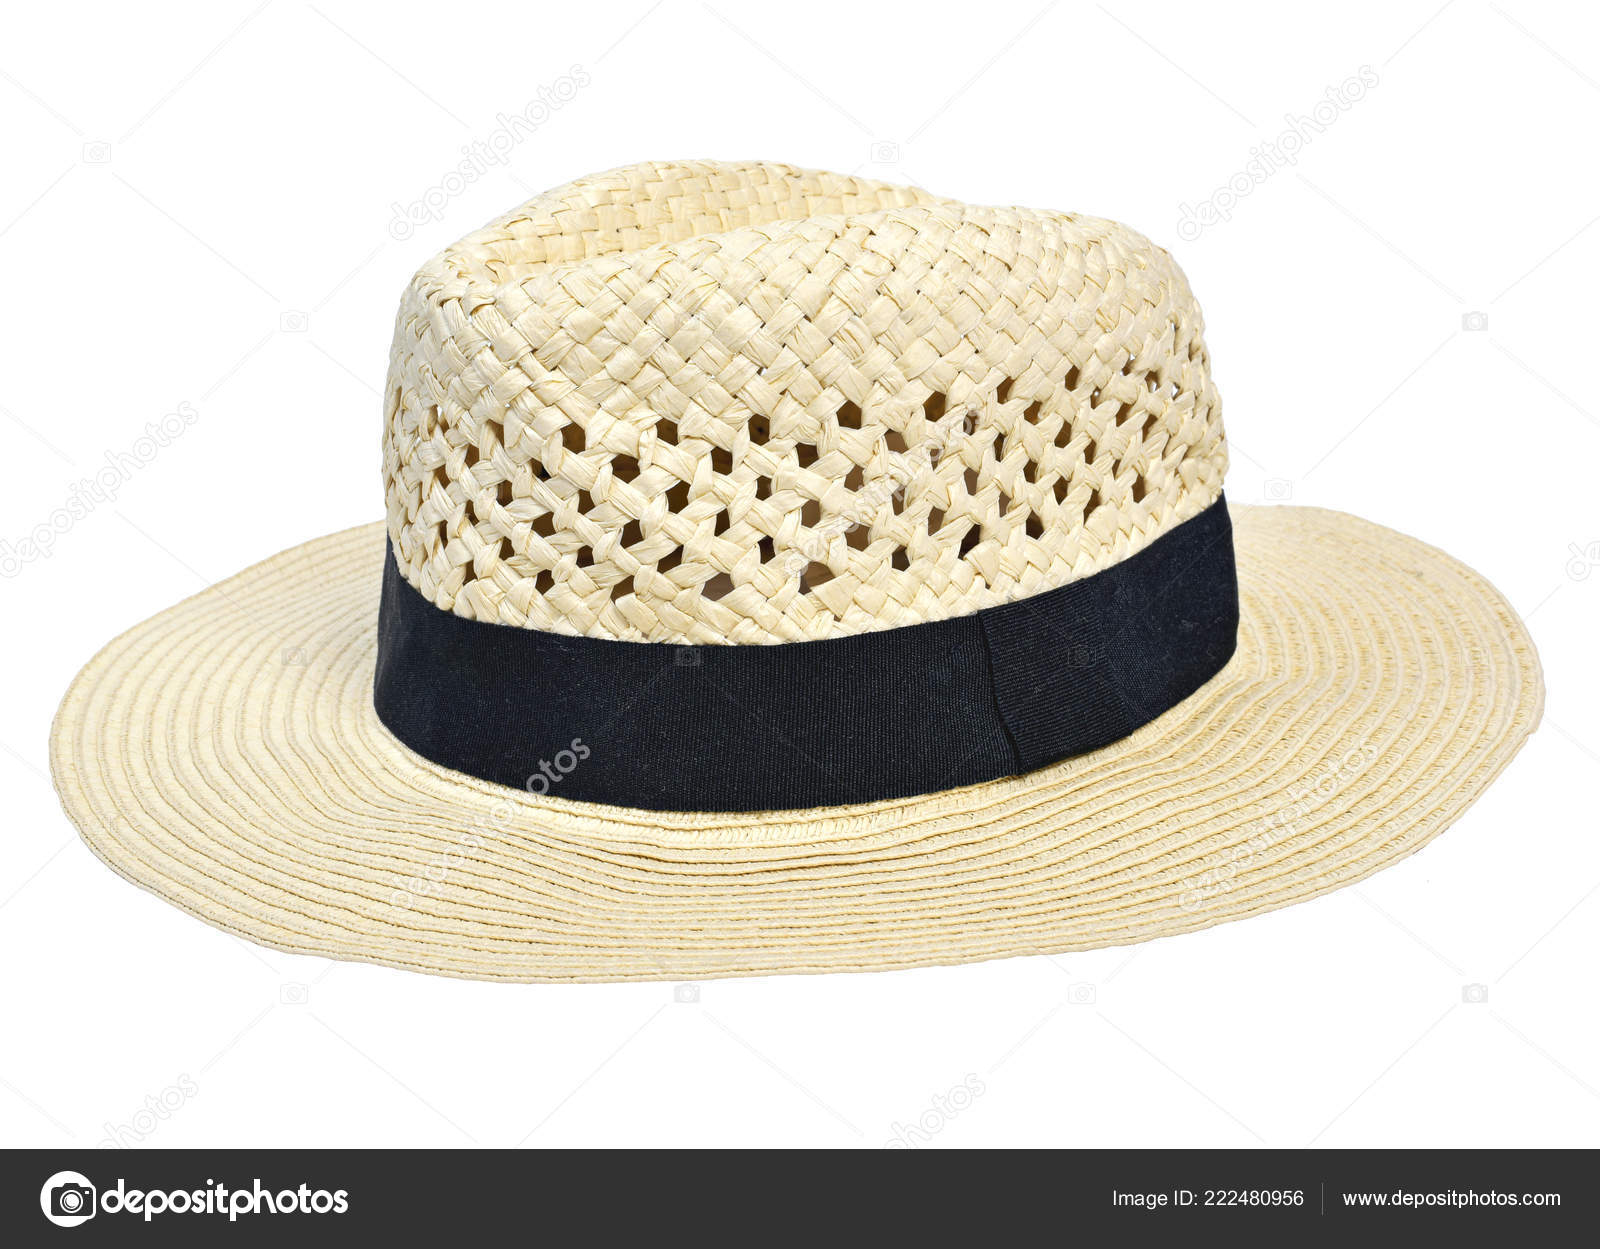 5e55771b47853 Panama Hat Traditional Summer Hat Black Hatband Ribbon Isolated White —  Stock Photo